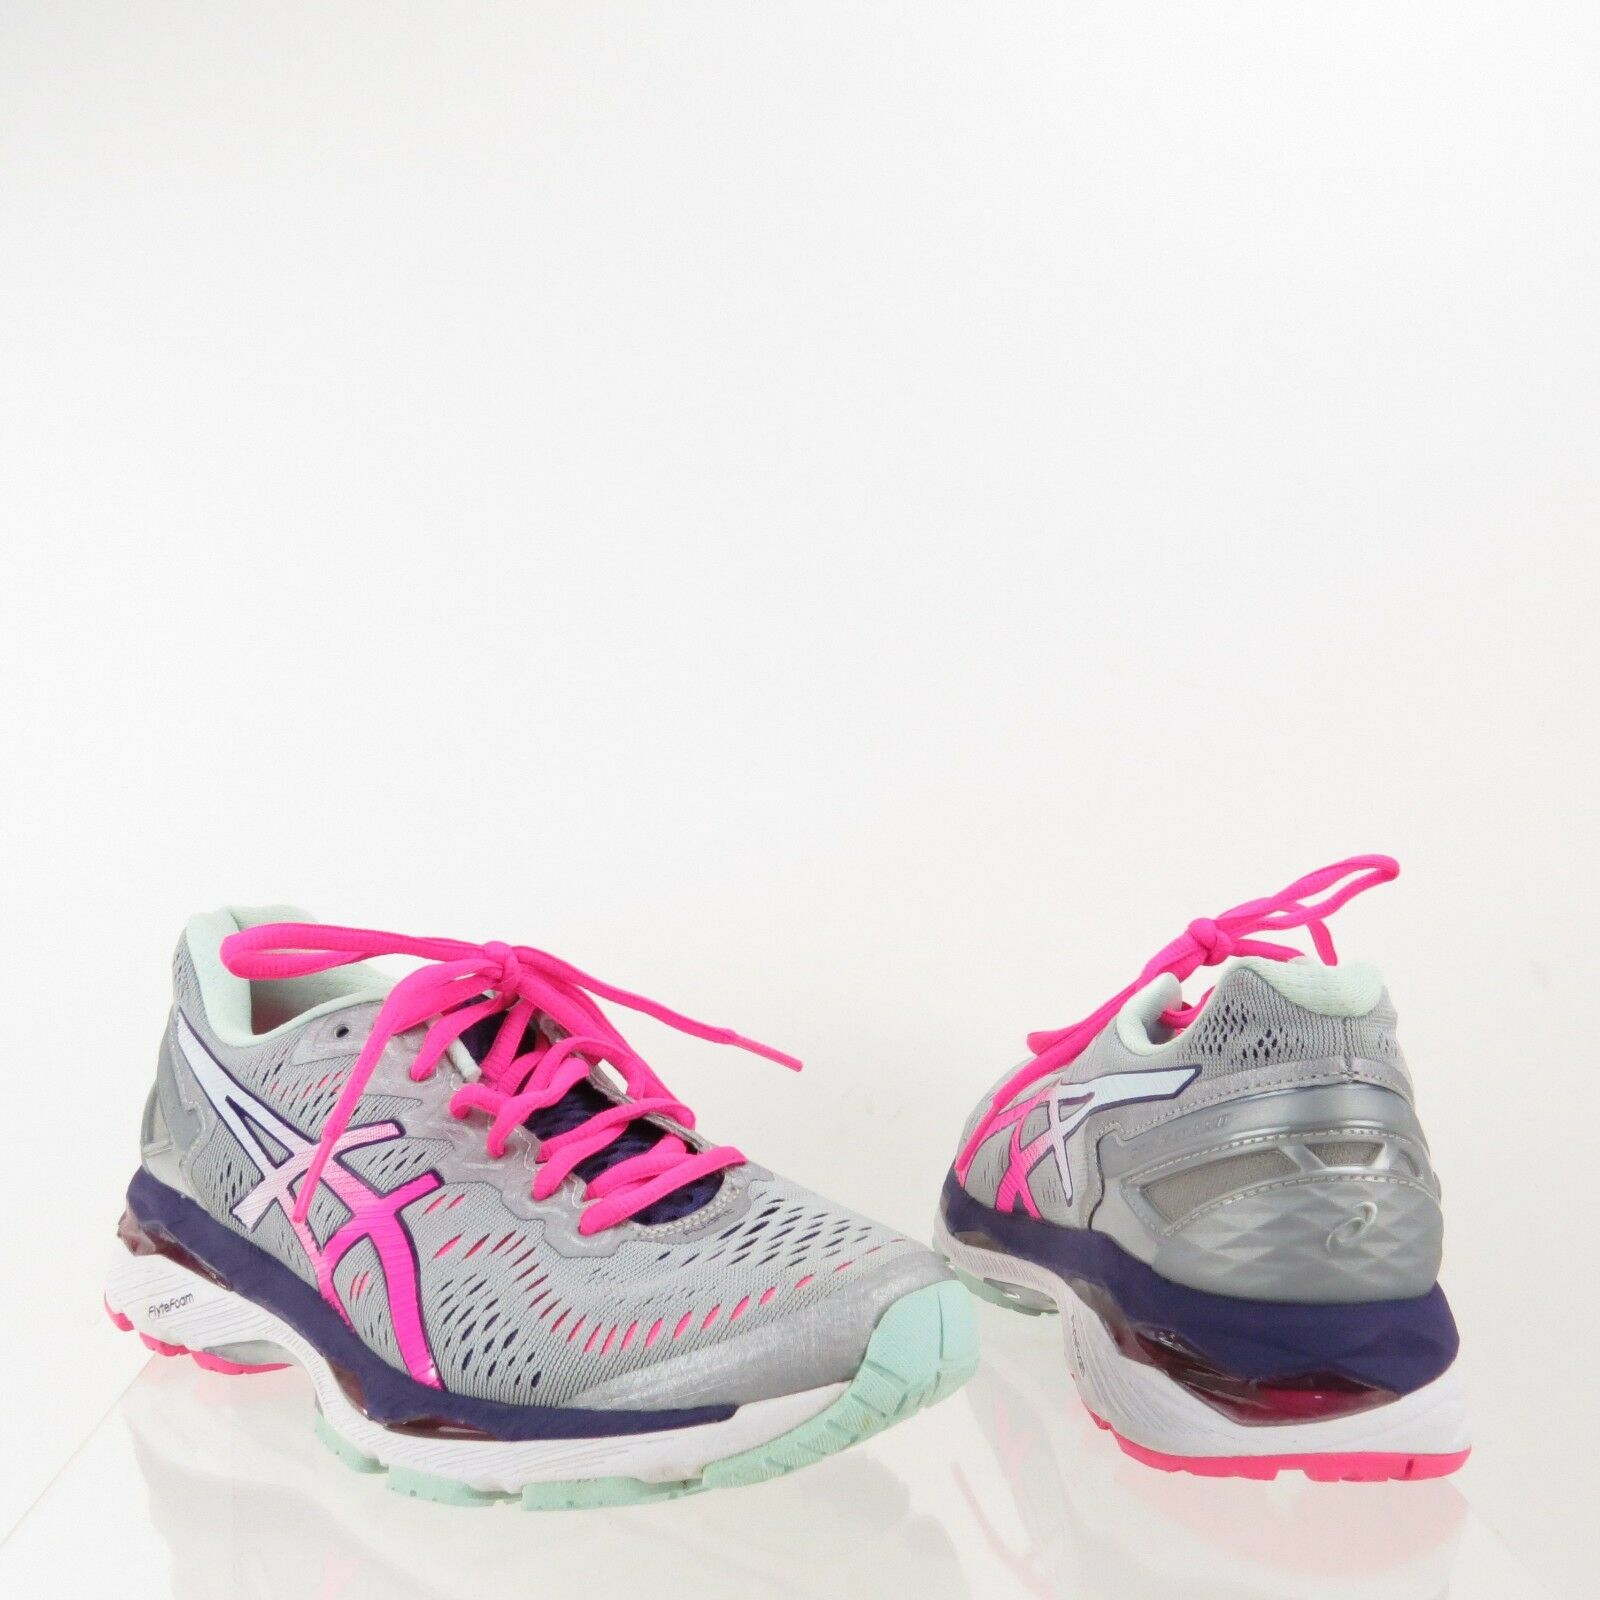 Femme Asics Gel-Kayano 23 Chaussures Gris Synthetic Running Sneakers